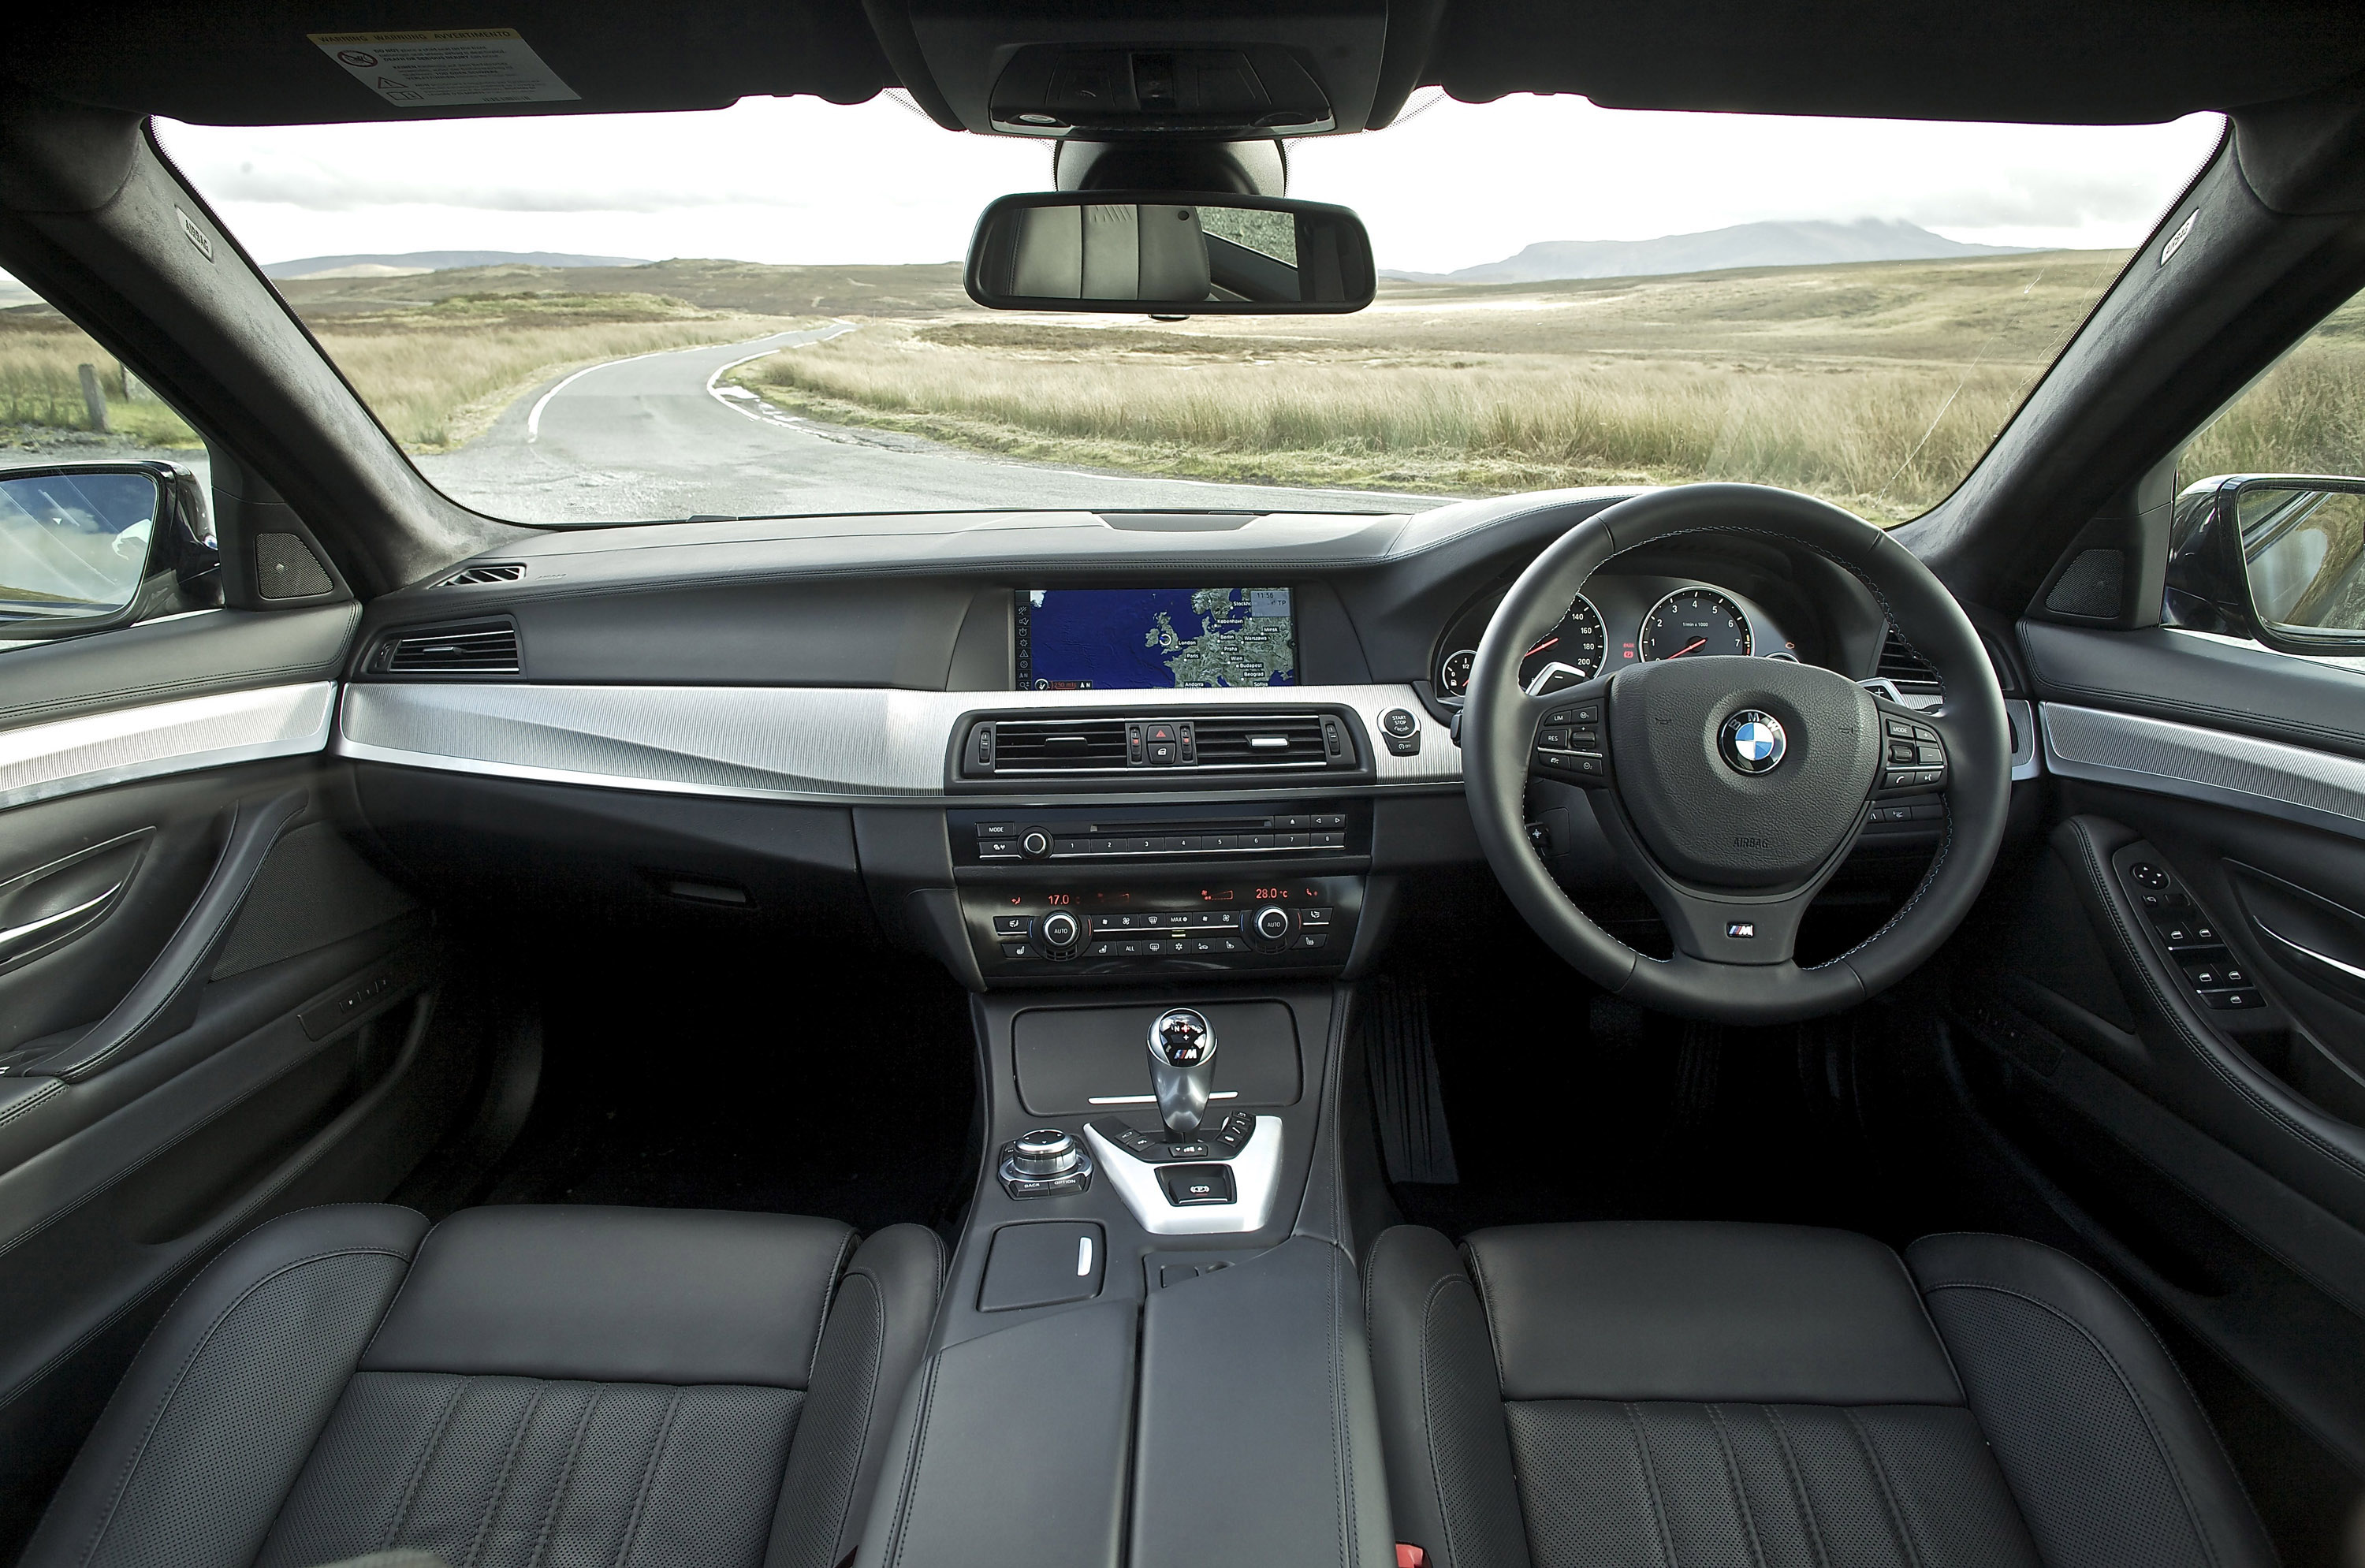 2012 bmw f10 m5 saloon uk picture 60746. Black Bedroom Furniture Sets. Home Design Ideas